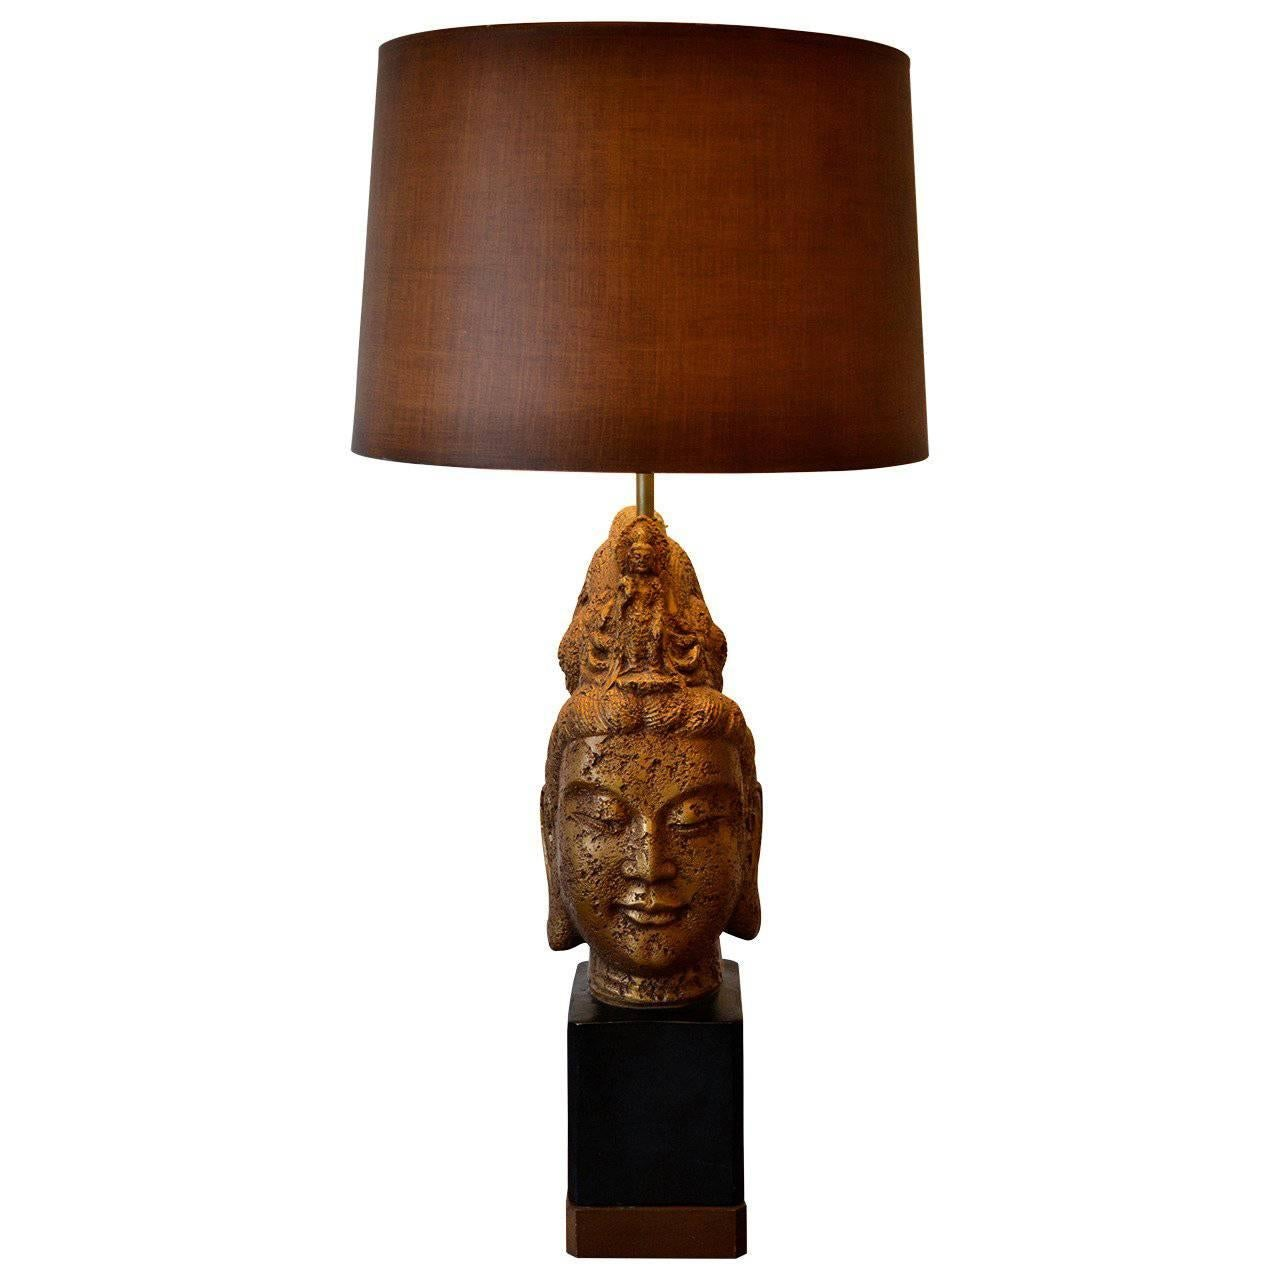 Large Buddha Head Table Lamp in the Style of James Mont, 1960's